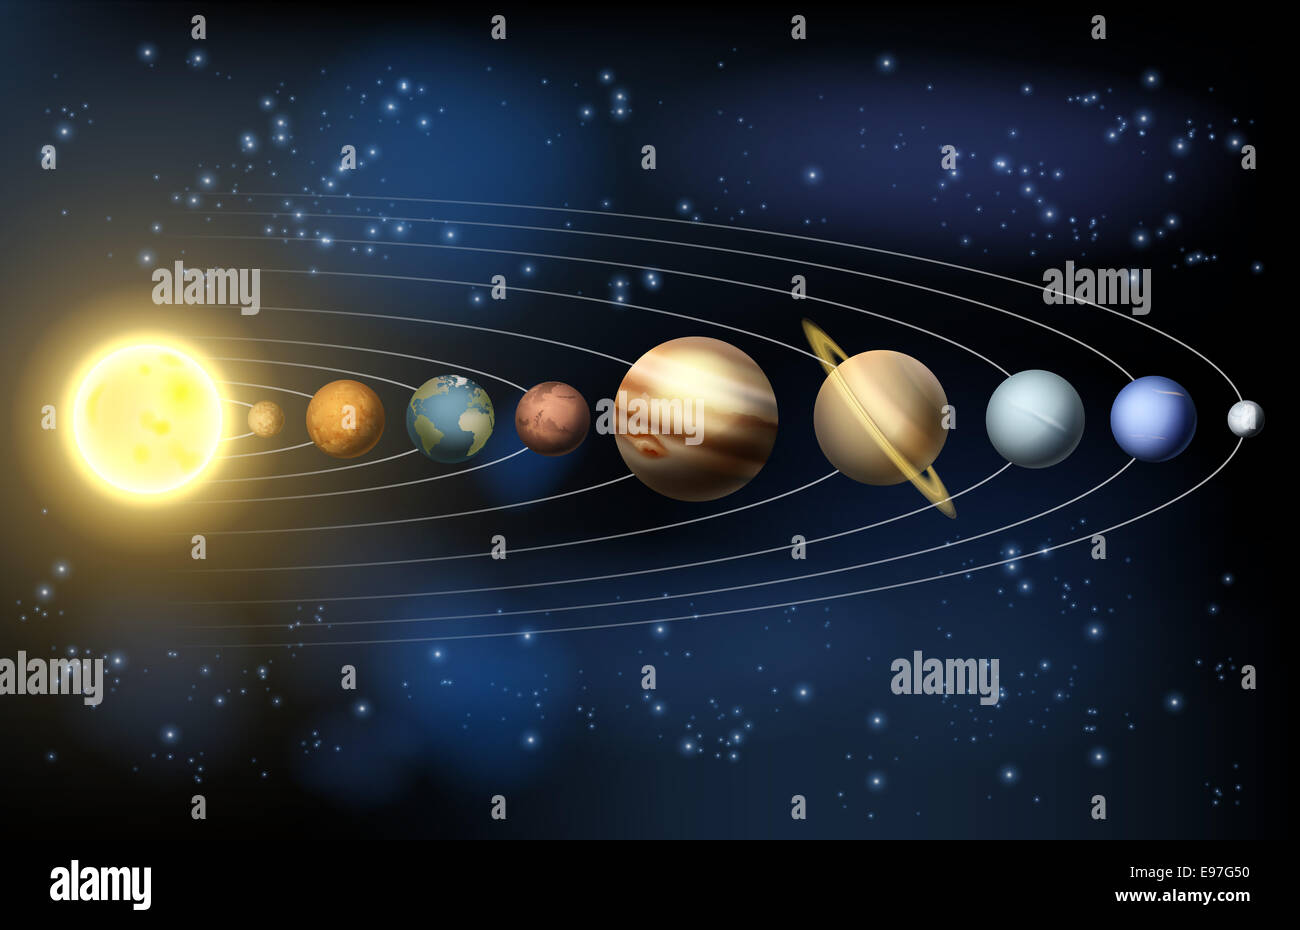 Solar system illustration of the planets in orbit around ...